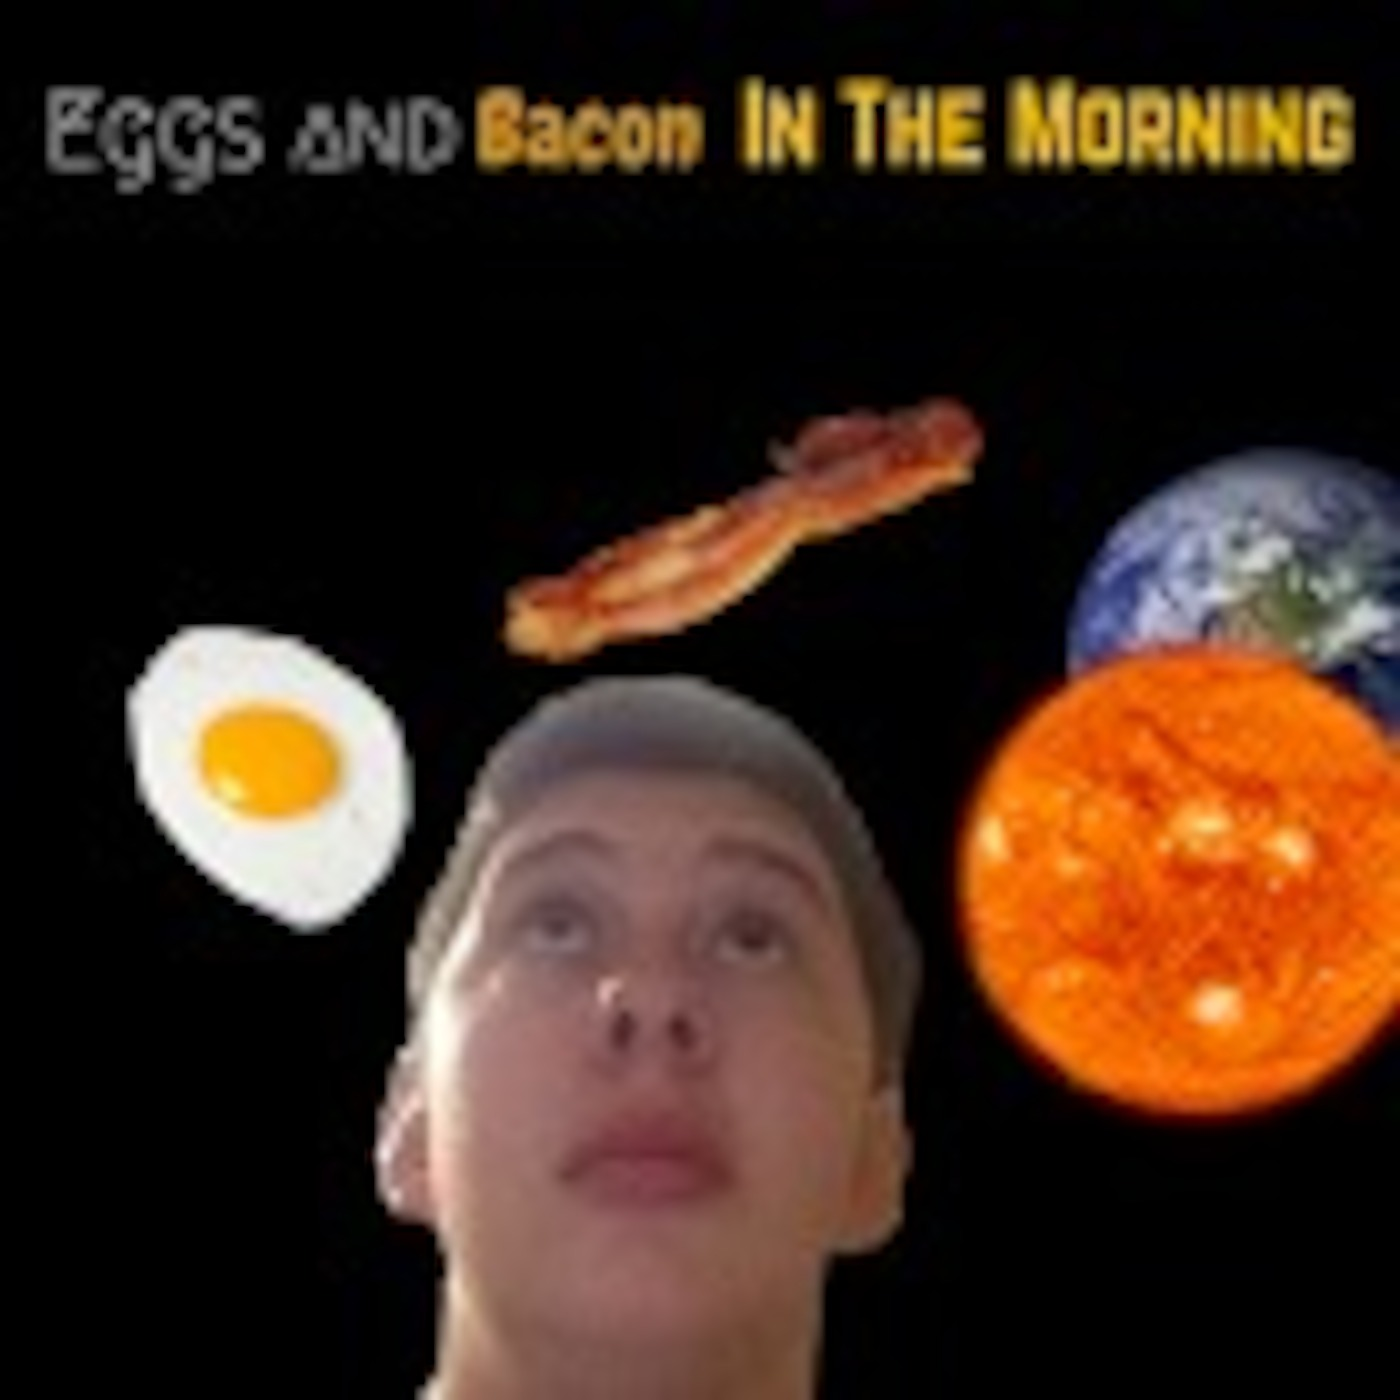 Eggs and Bacon In The Morning